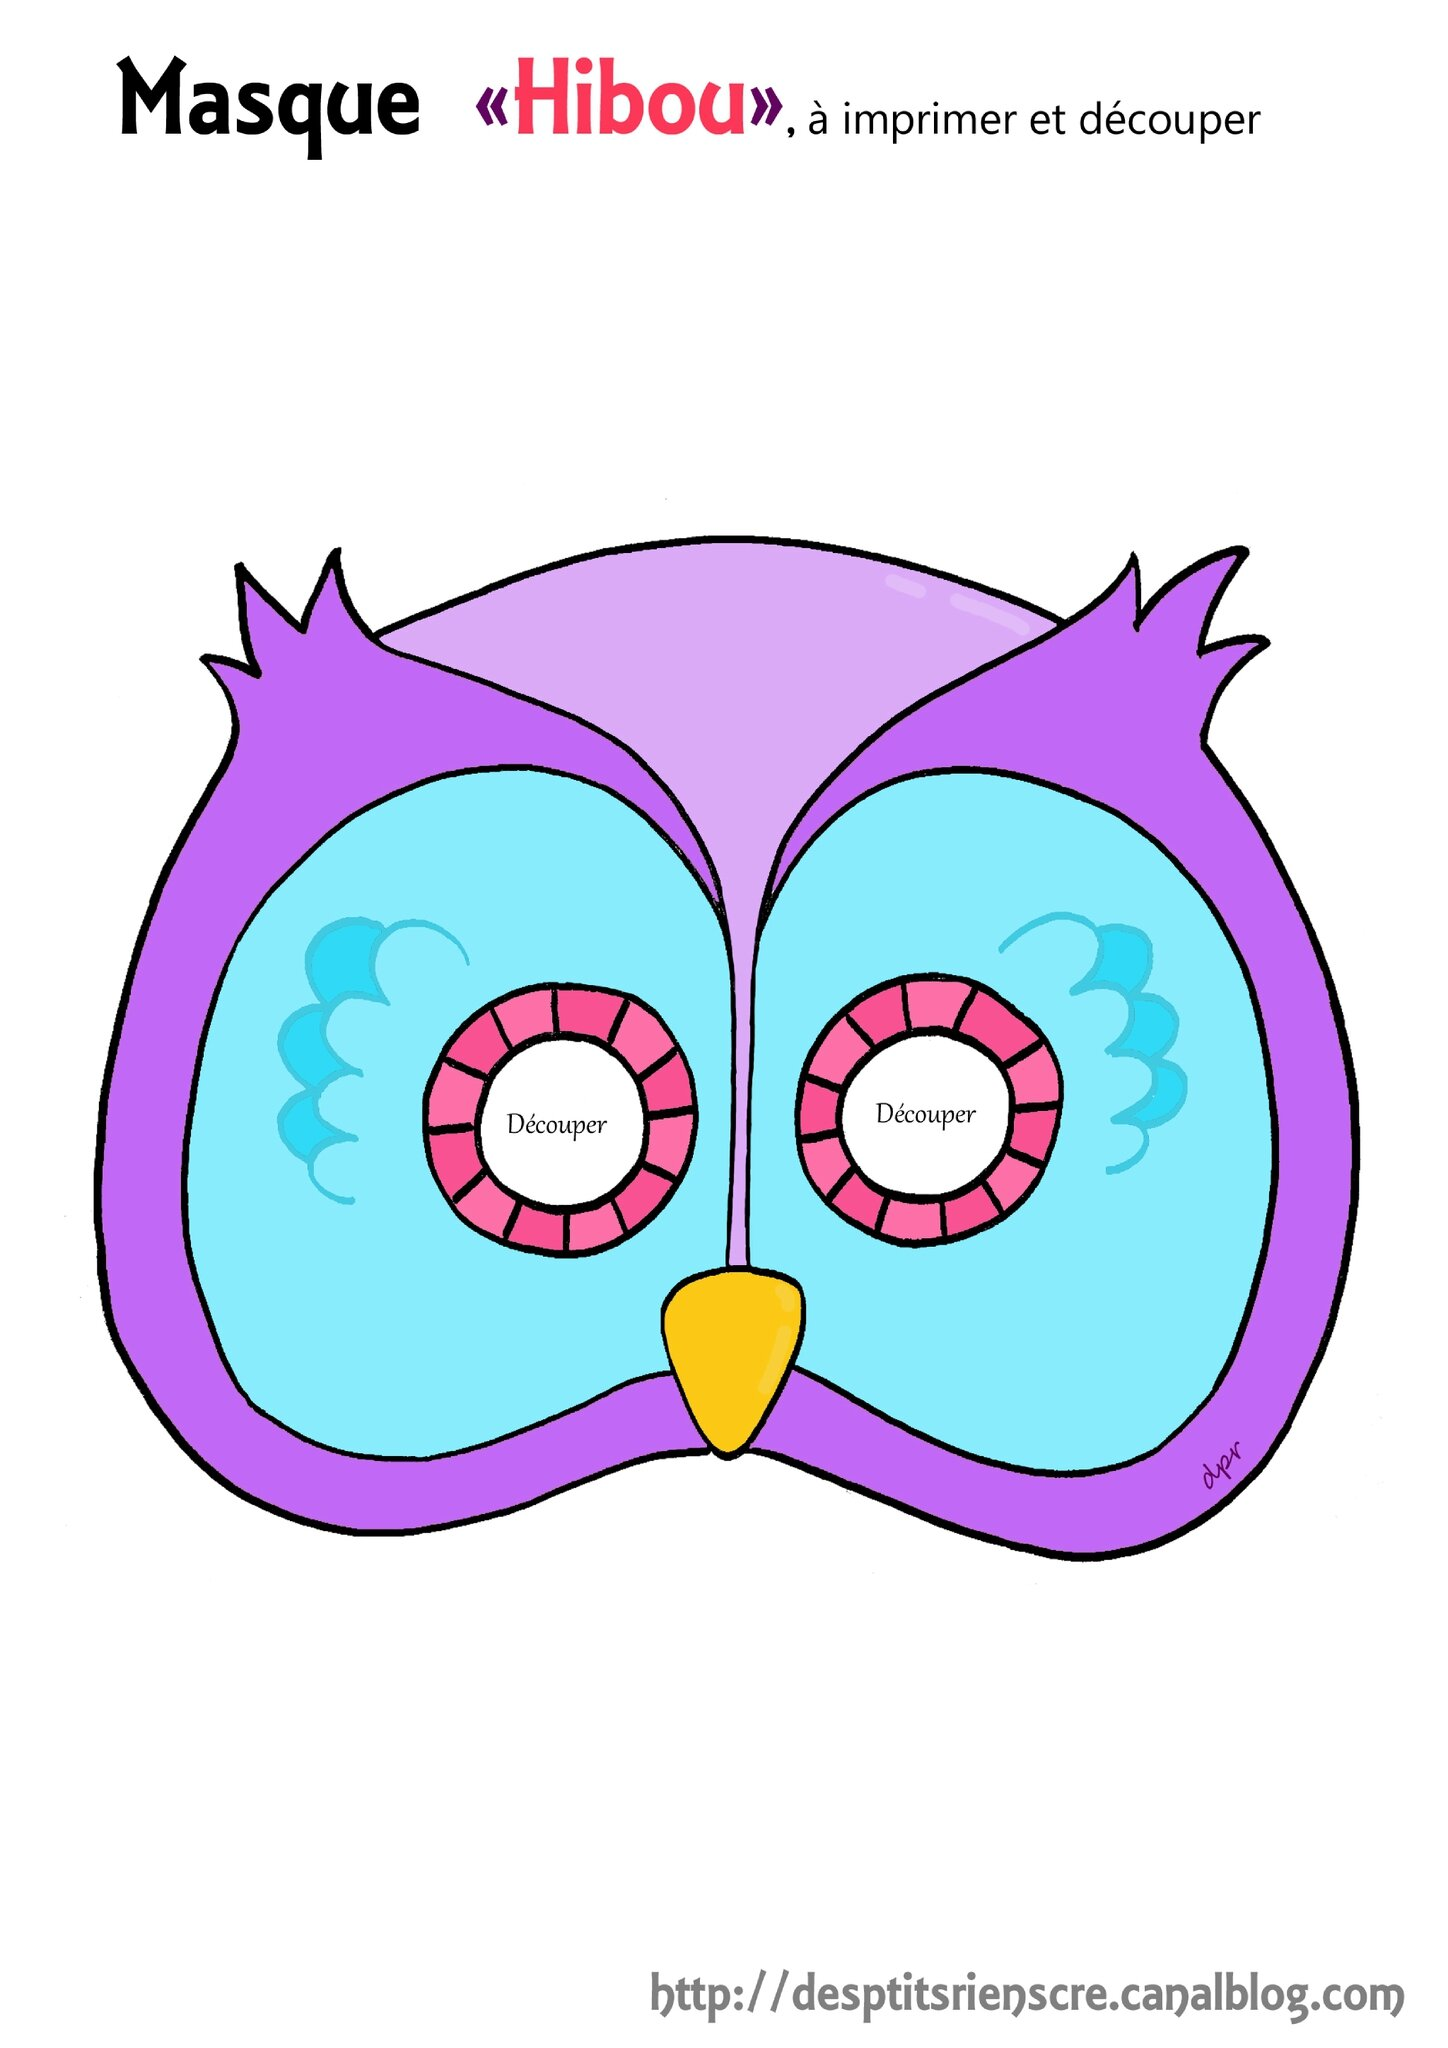 masque hibou copie1 copie copie